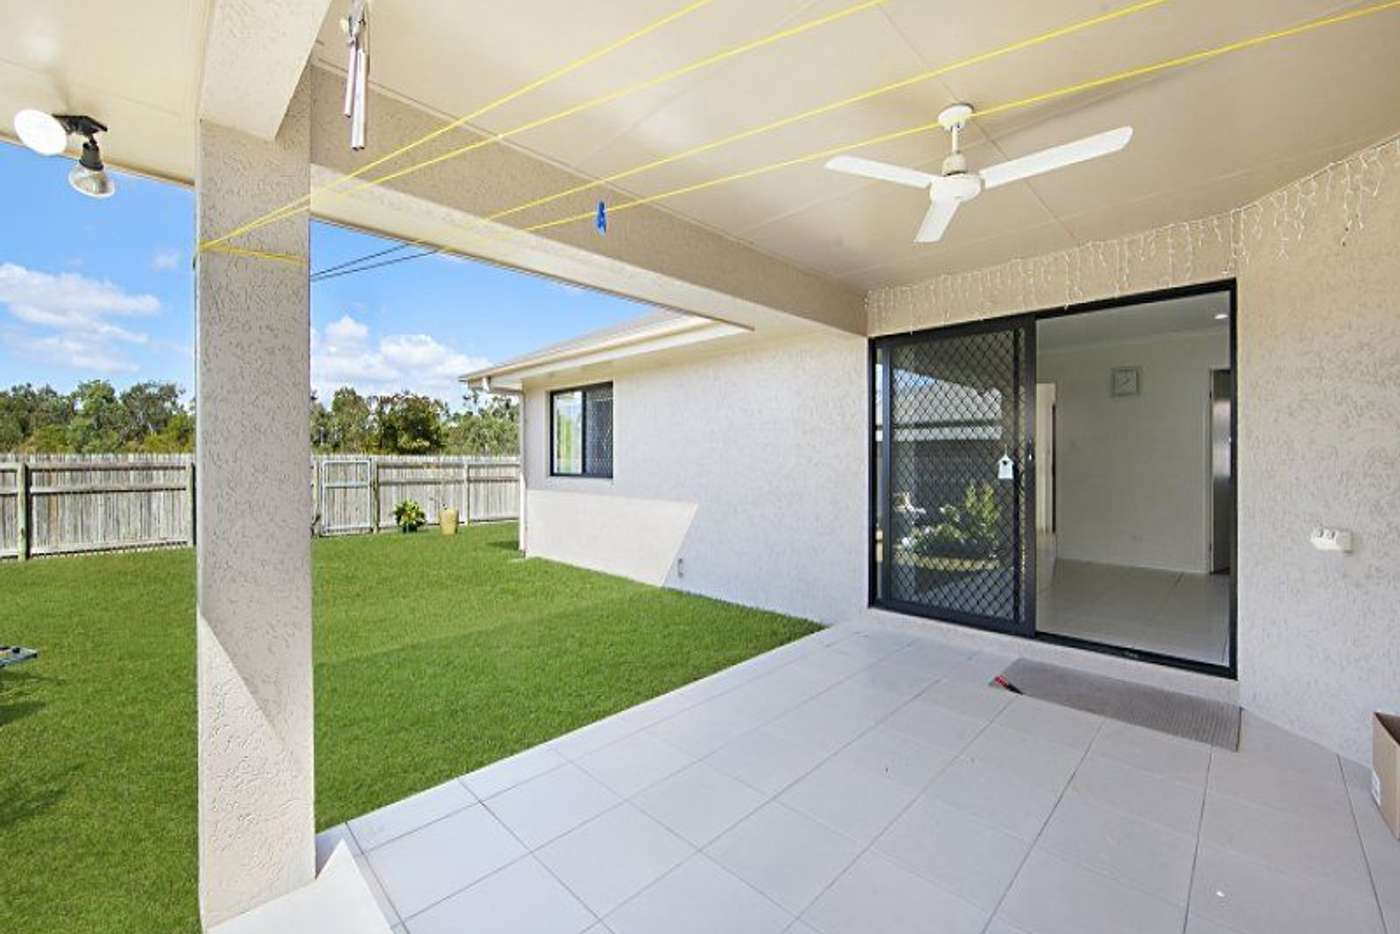 Seventh view of Homely house listing, 53 Summerland Drive, Deeragun QLD 4818